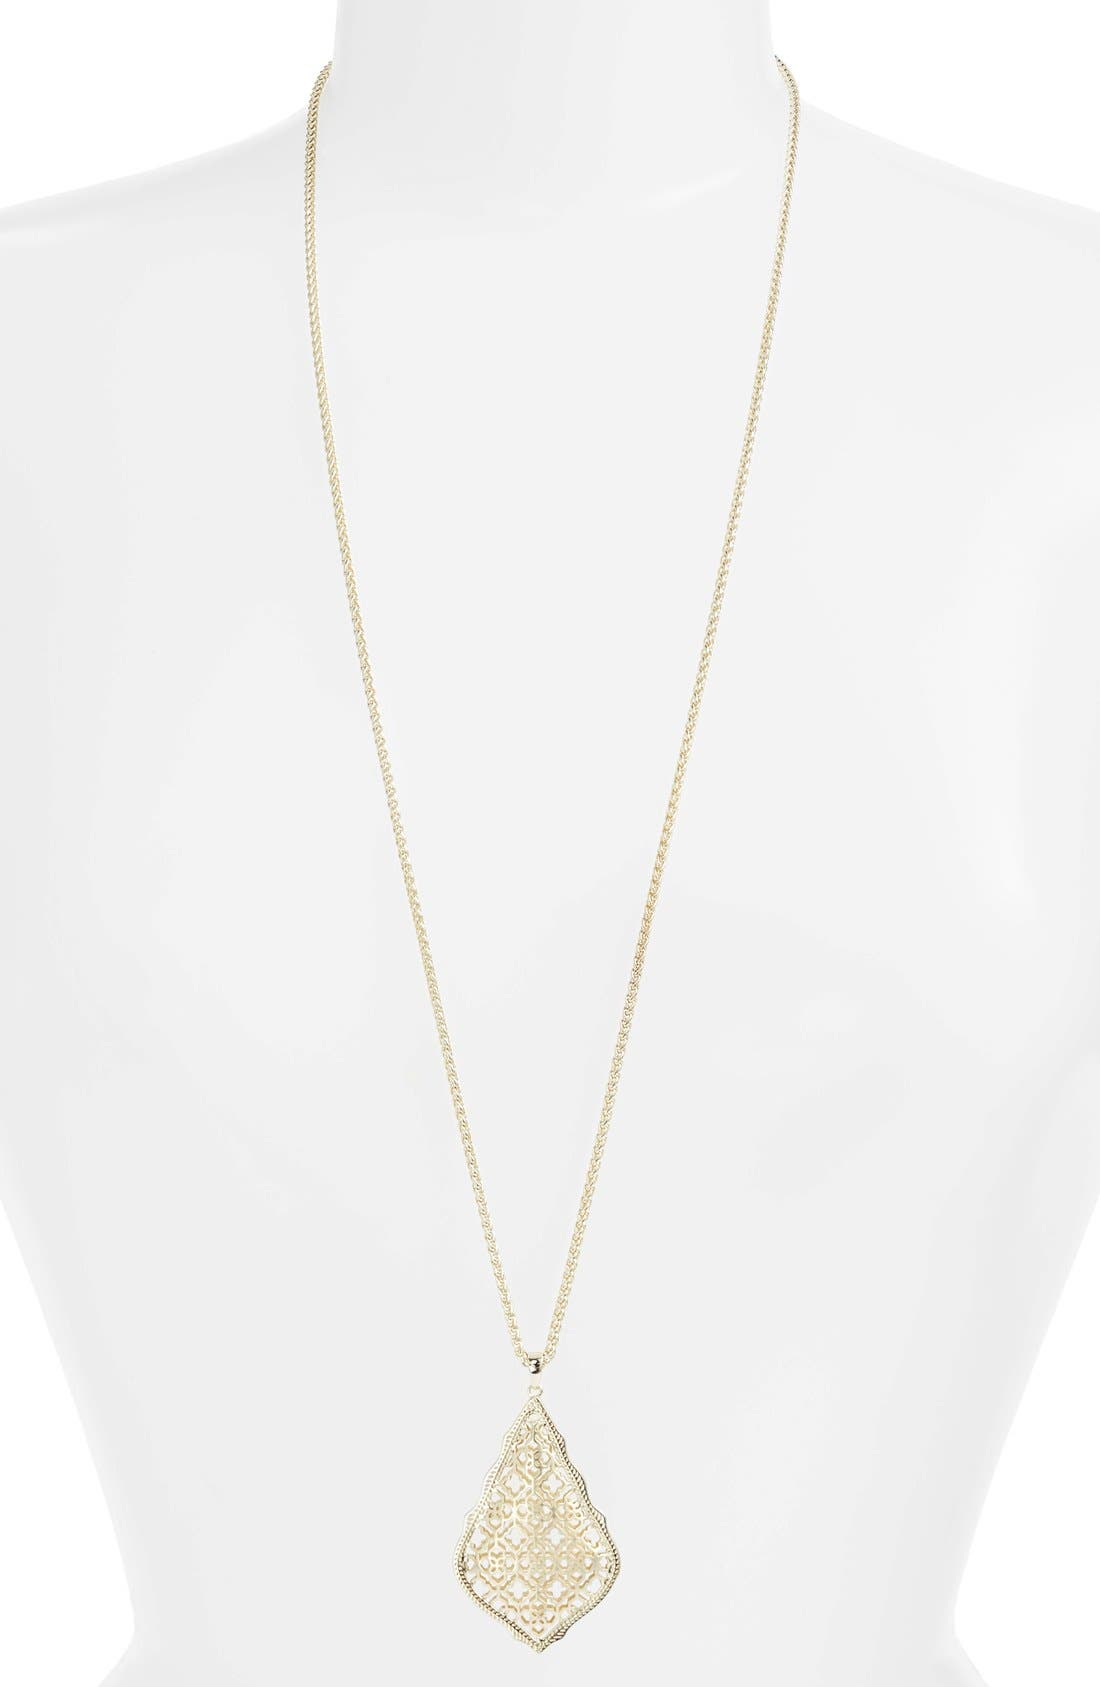 Main Image - Kendra Scott 'Aiden' Pendant Necklace